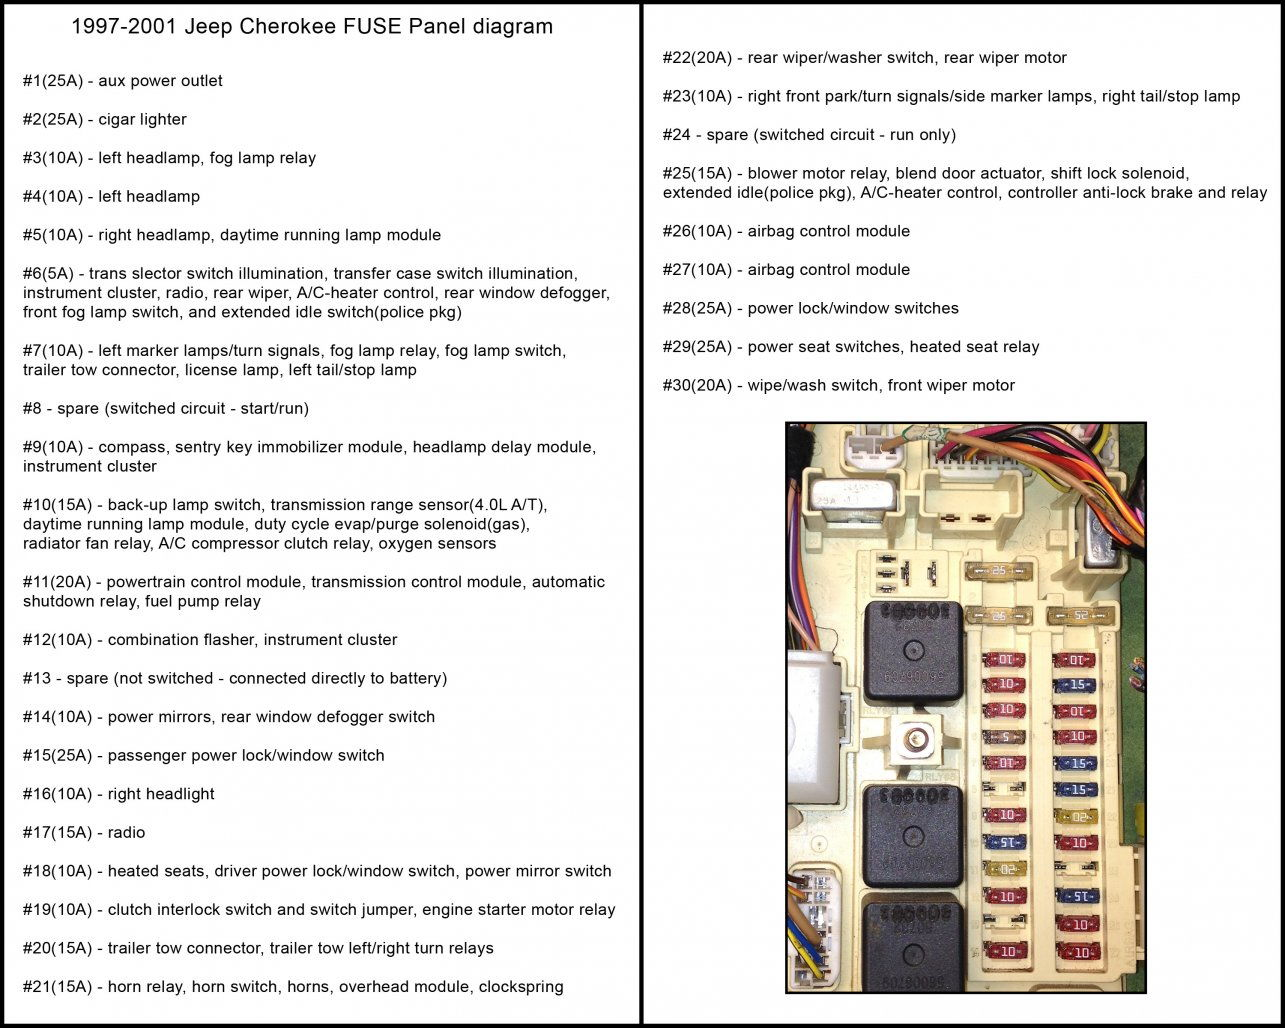 99 jeep grand cherokee laredo wiring diagram polaris ranger 500 97 2 door fuse confusion - forum